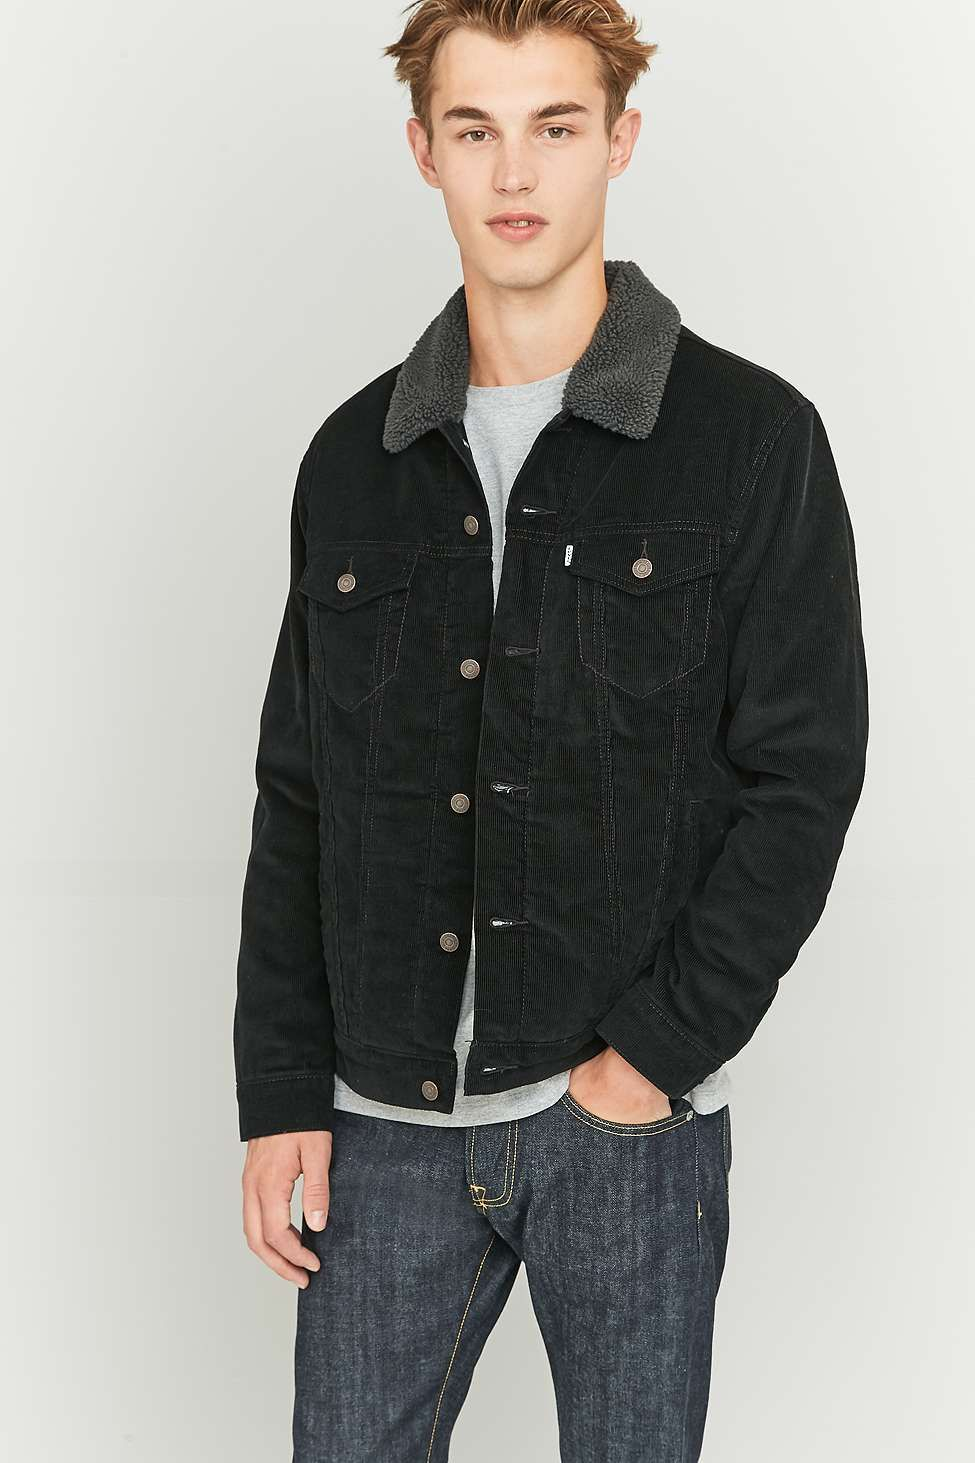 Levi's Type 3 Black Corduroy Sherpa Trucker Jacket Black